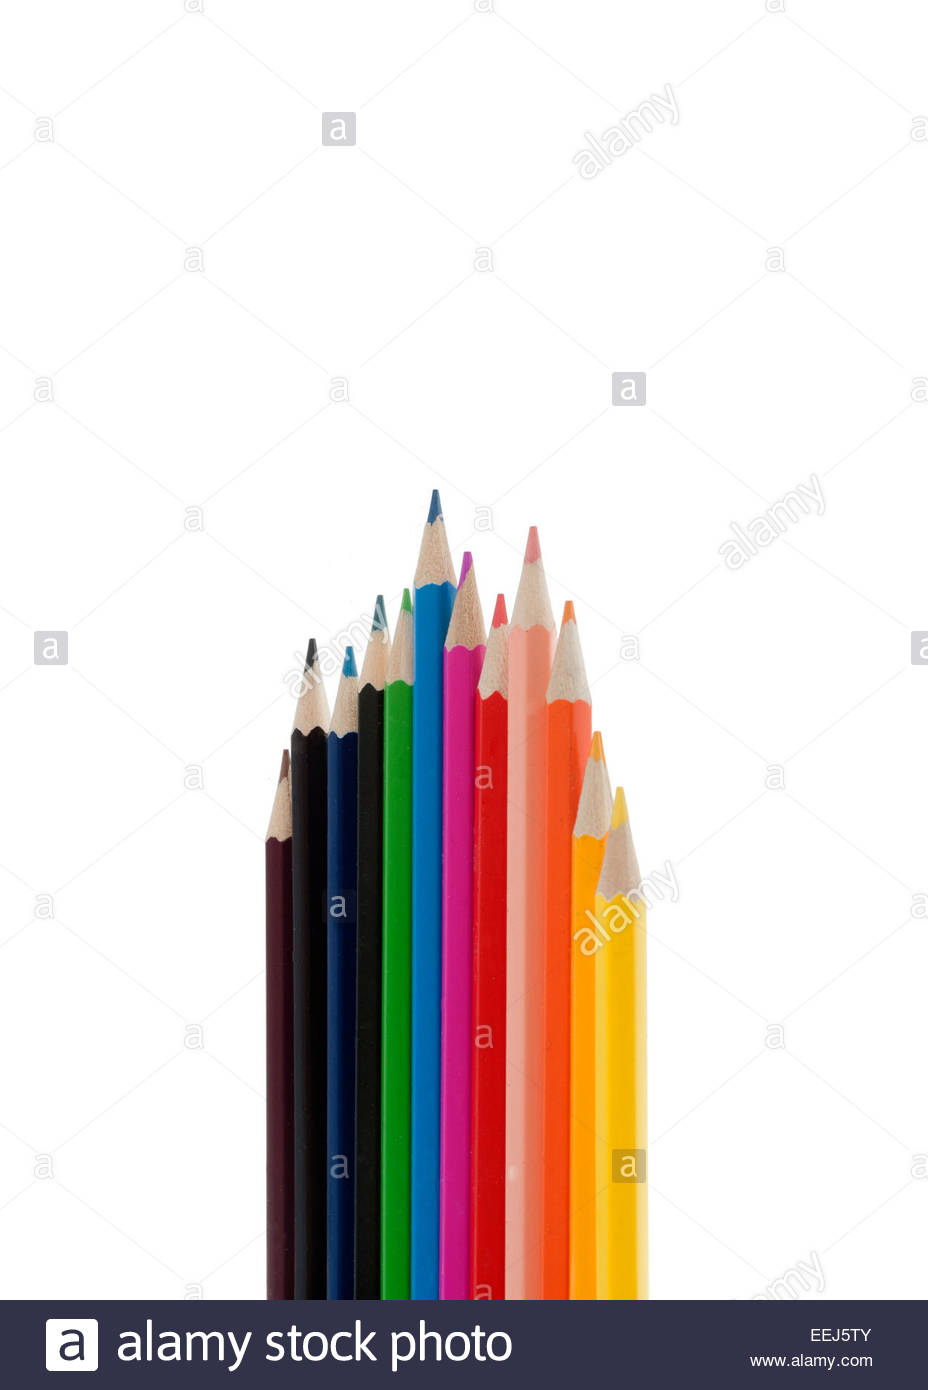 Colouring pencil cut out. - Stock Image